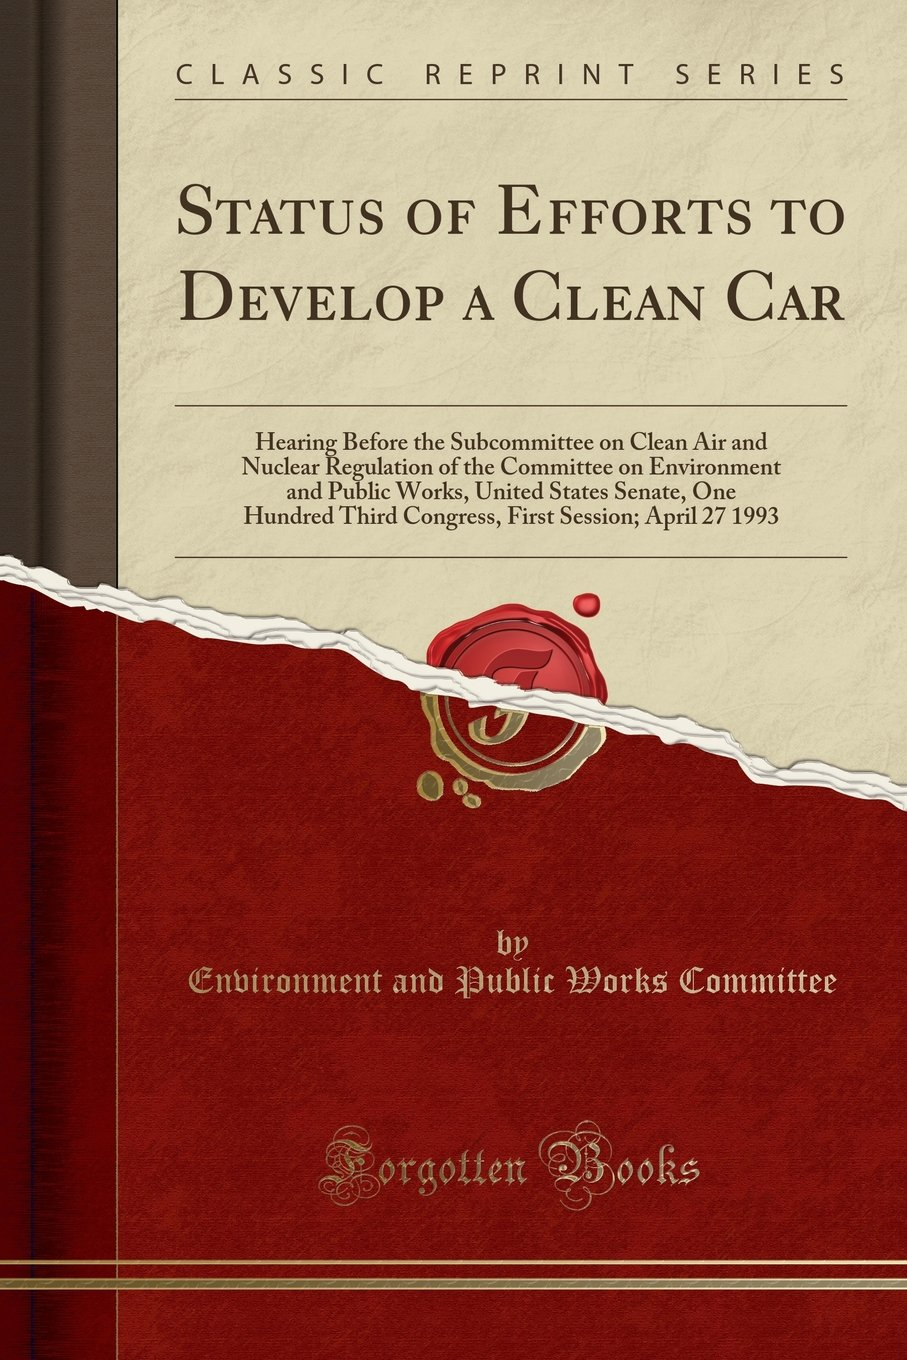 Download Status of Efforts to Develop a Clean Car: Hearing Before the Subcommittee on Clean Air and Nuclear Regulation of the Committee on Environment and ... Third Congress, First Session; April 27 1993 ebook